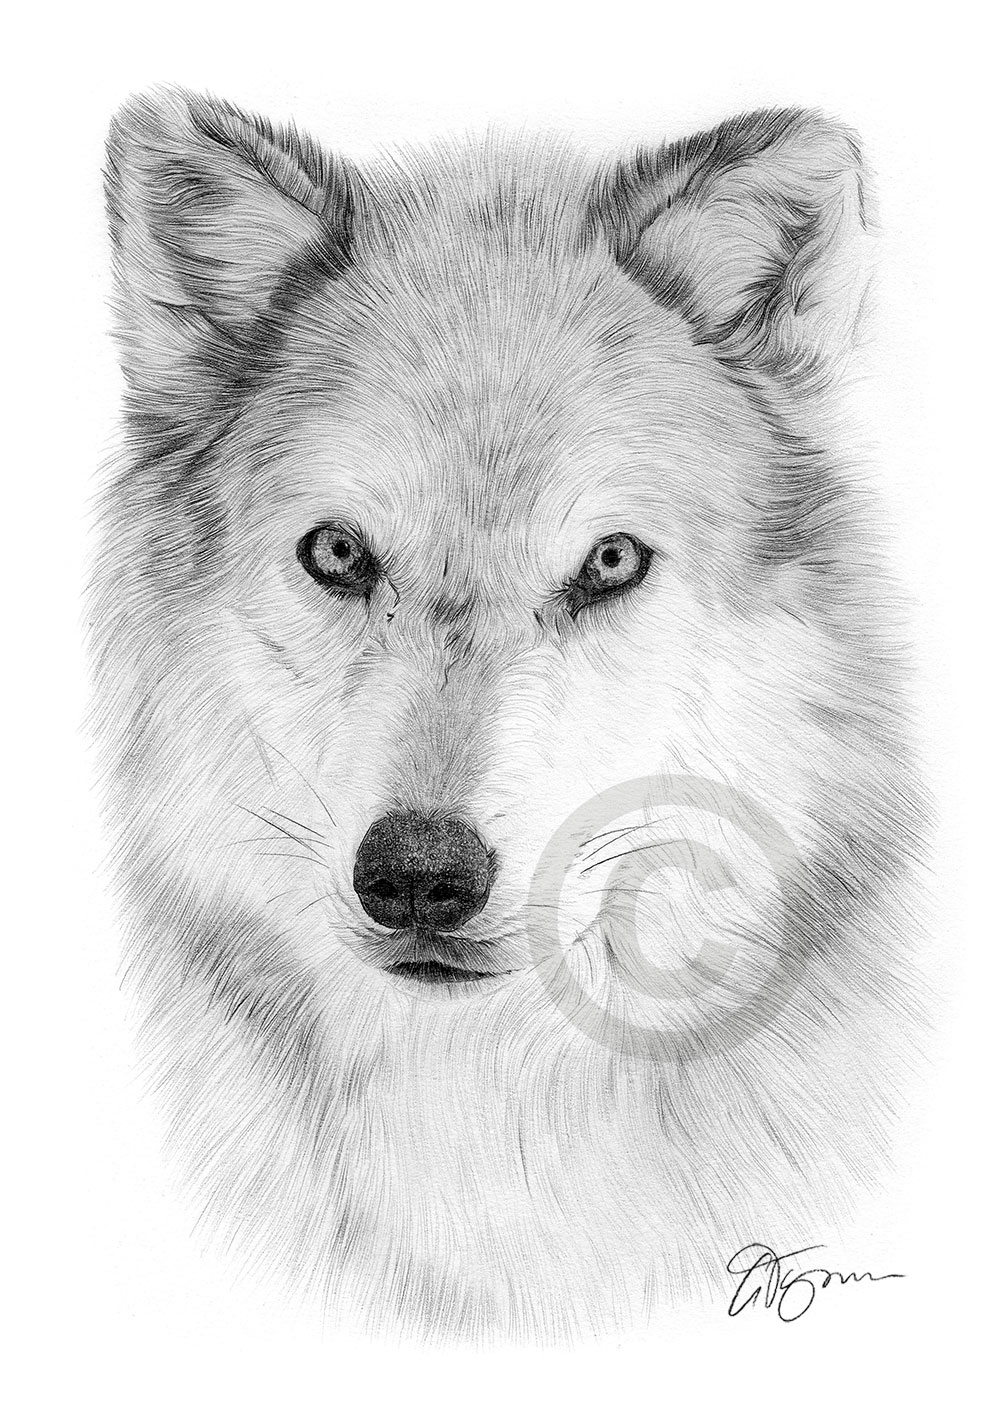 Details about arctic wolf pencil drawing art print a3 a4 sizes signed by uk artist